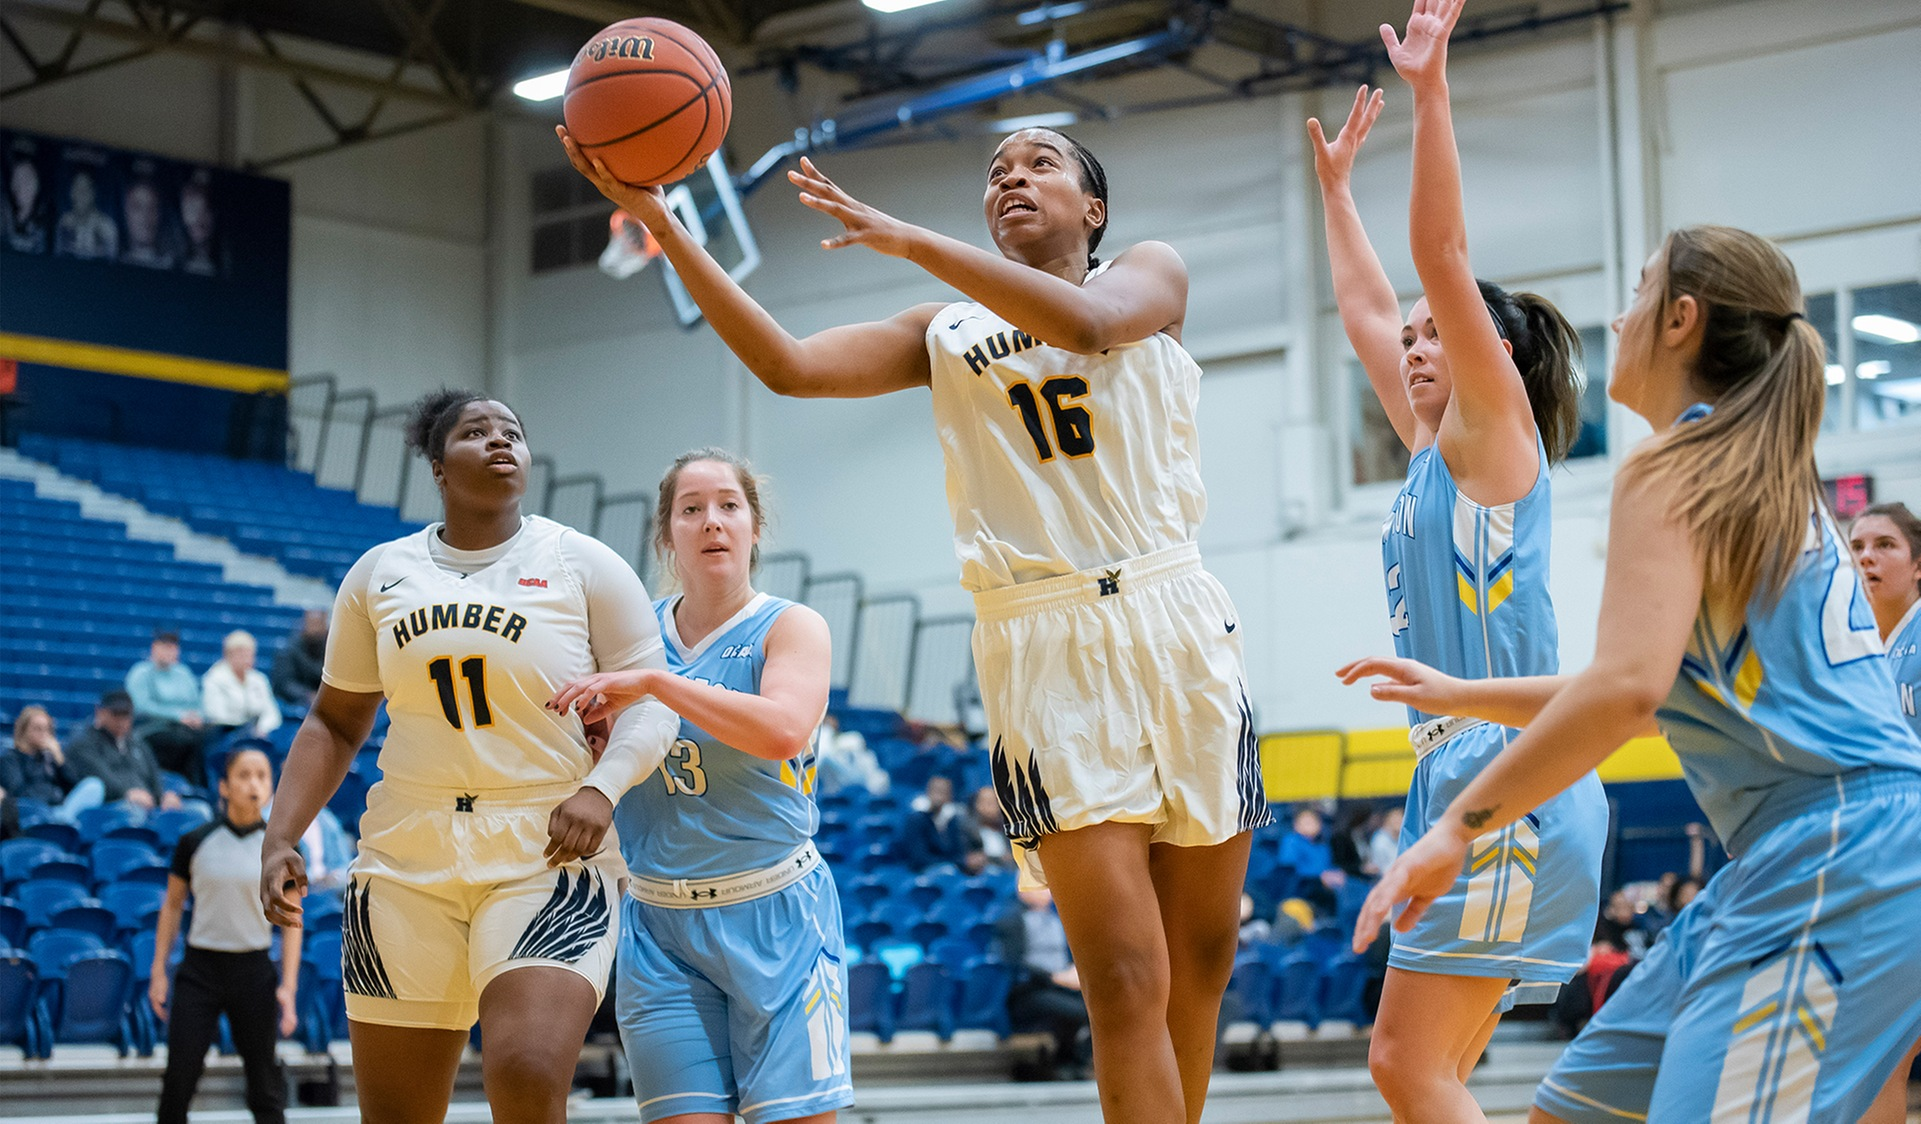 No. 12 WOMEN'S BASKETBALL CONCLUDES ROAD TRIP WITH WIN AT LAMBTON, 87-50